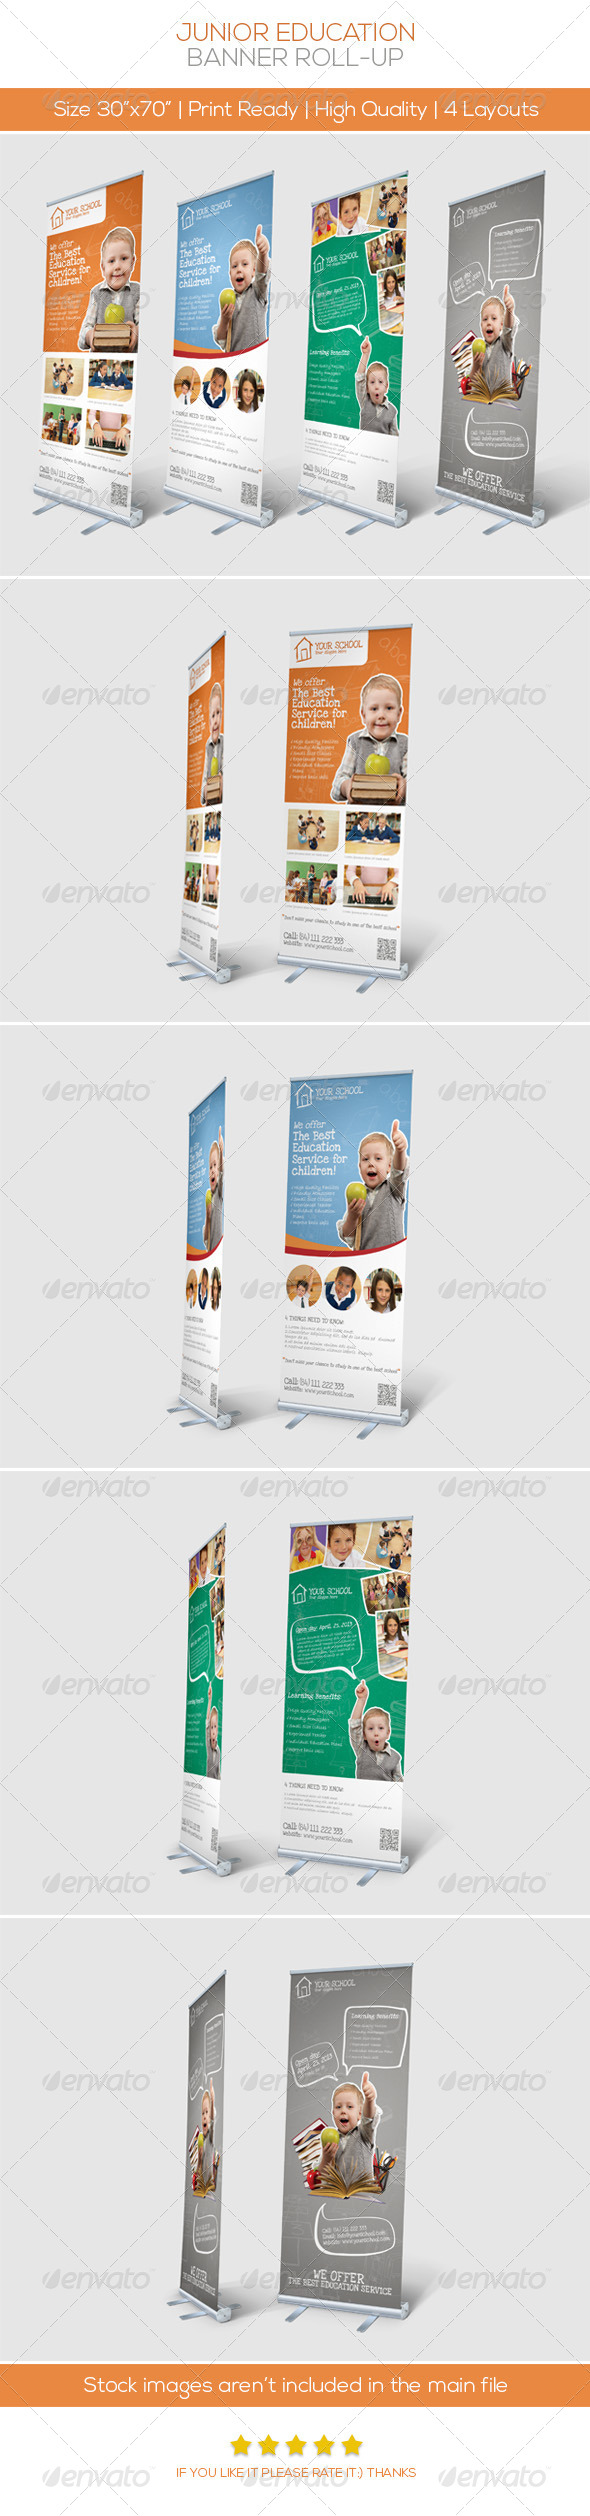 Premium Junior Education Banner Roll-up - Signage Print Templates